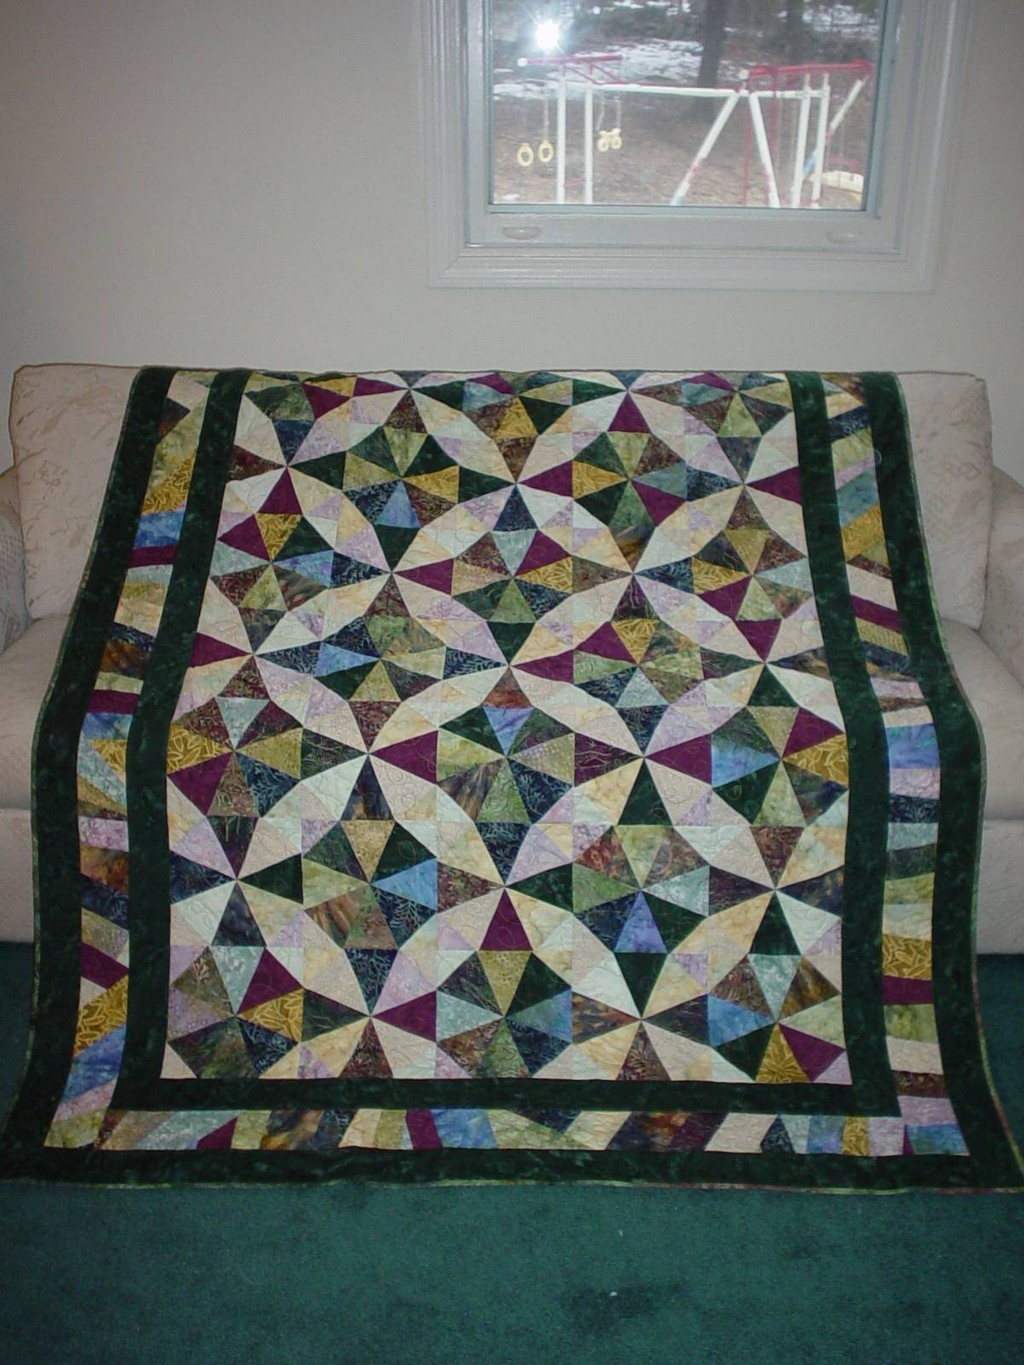 butterfly pattern quilts, free baby quilt patterns, easy quilt patterns, amish quilts